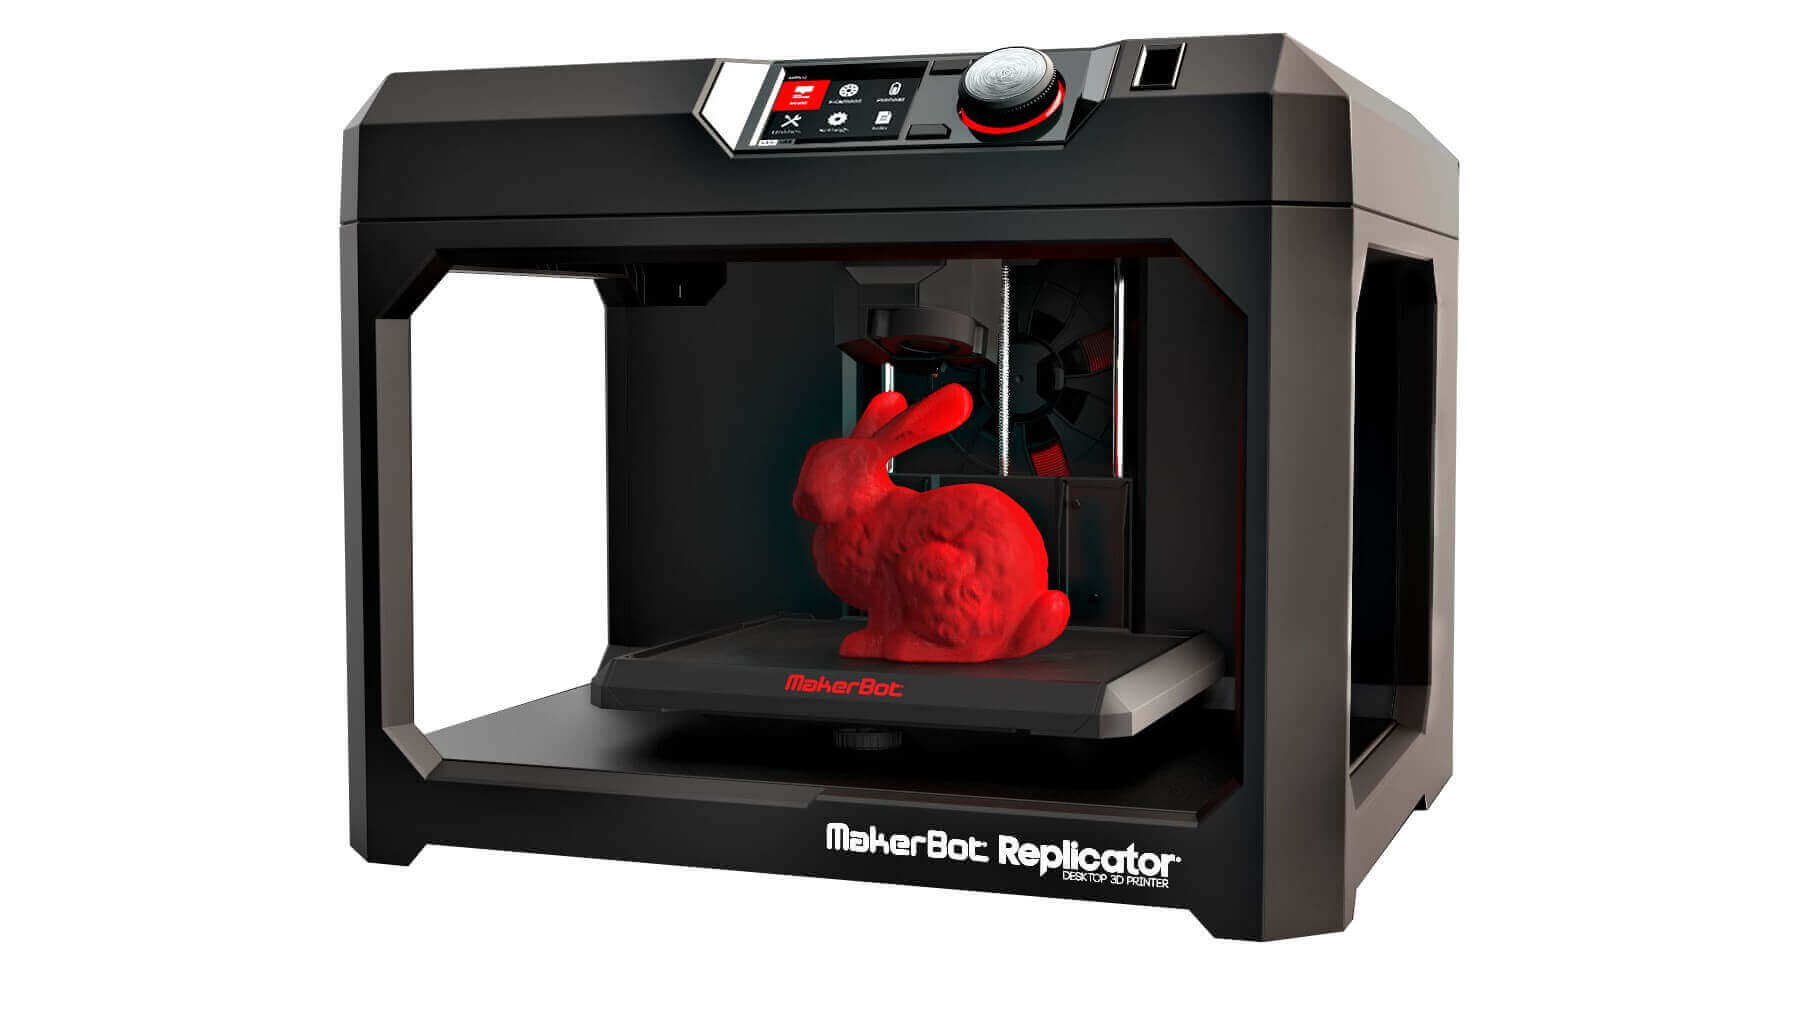 MakerBot Replicator 5th Gen brings convenience for a hefty price | All3DP